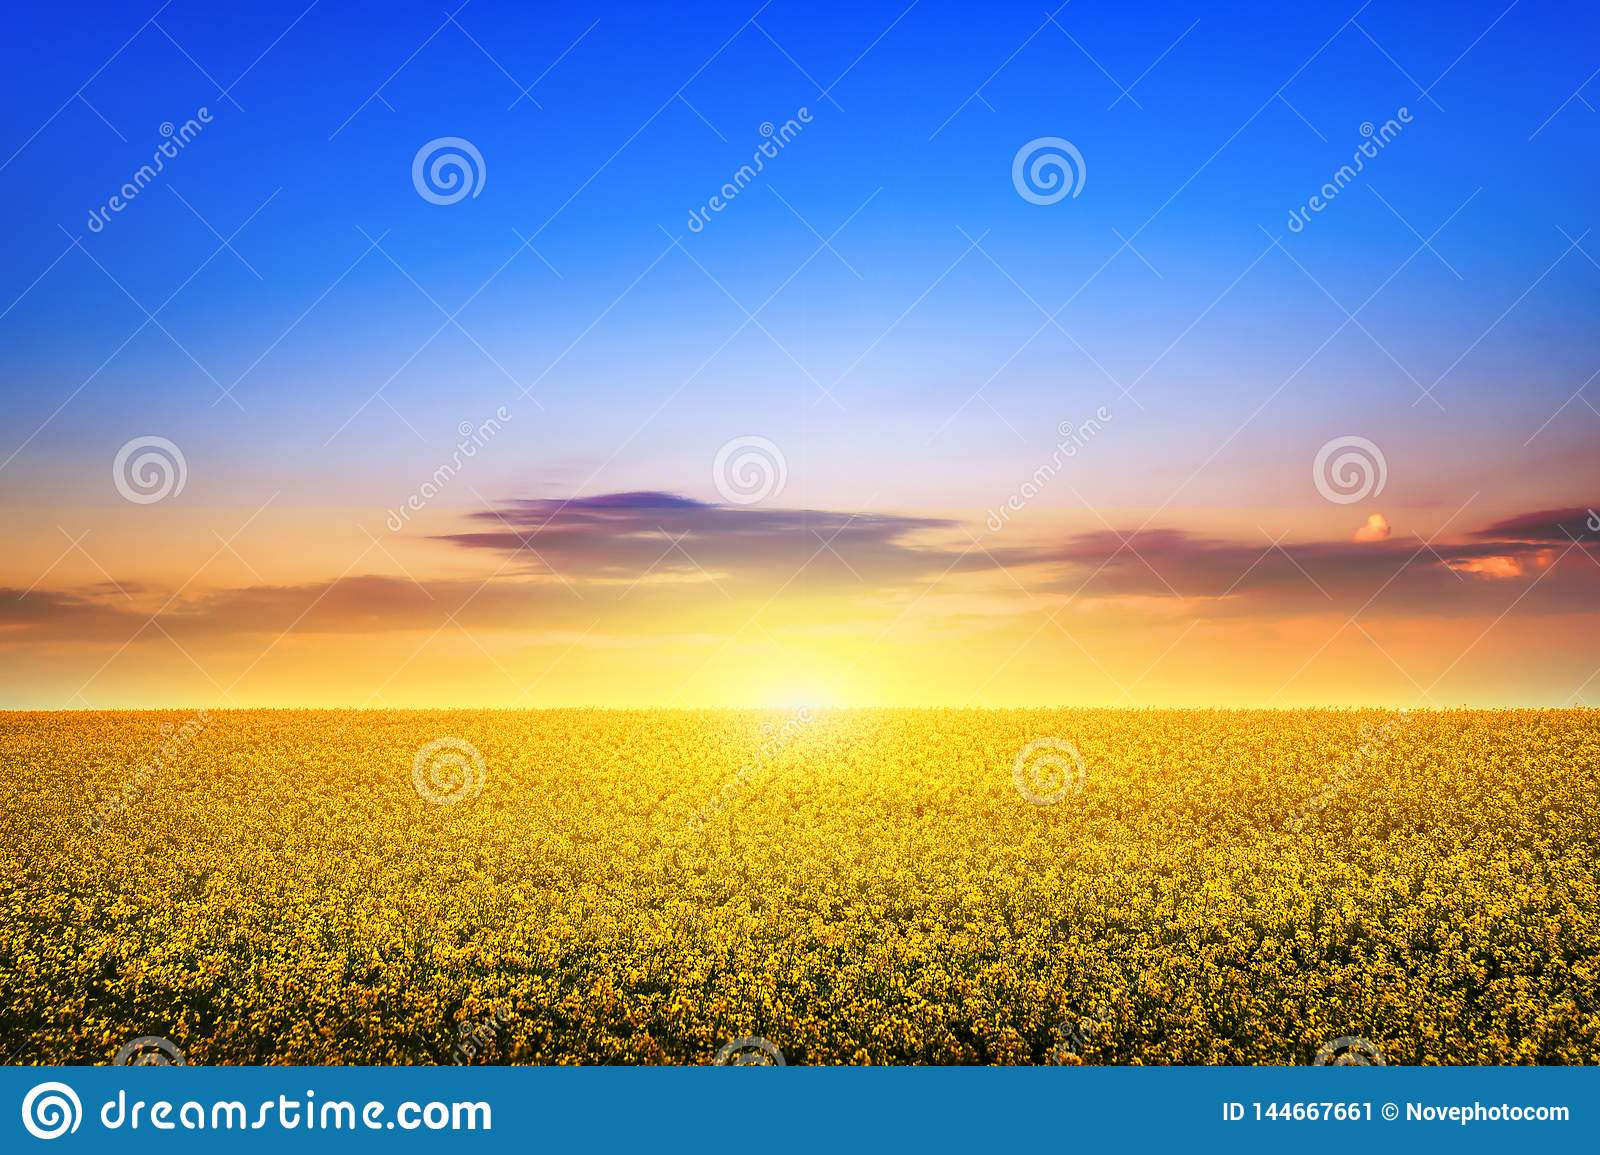 Field of rapeseed flowers in spring